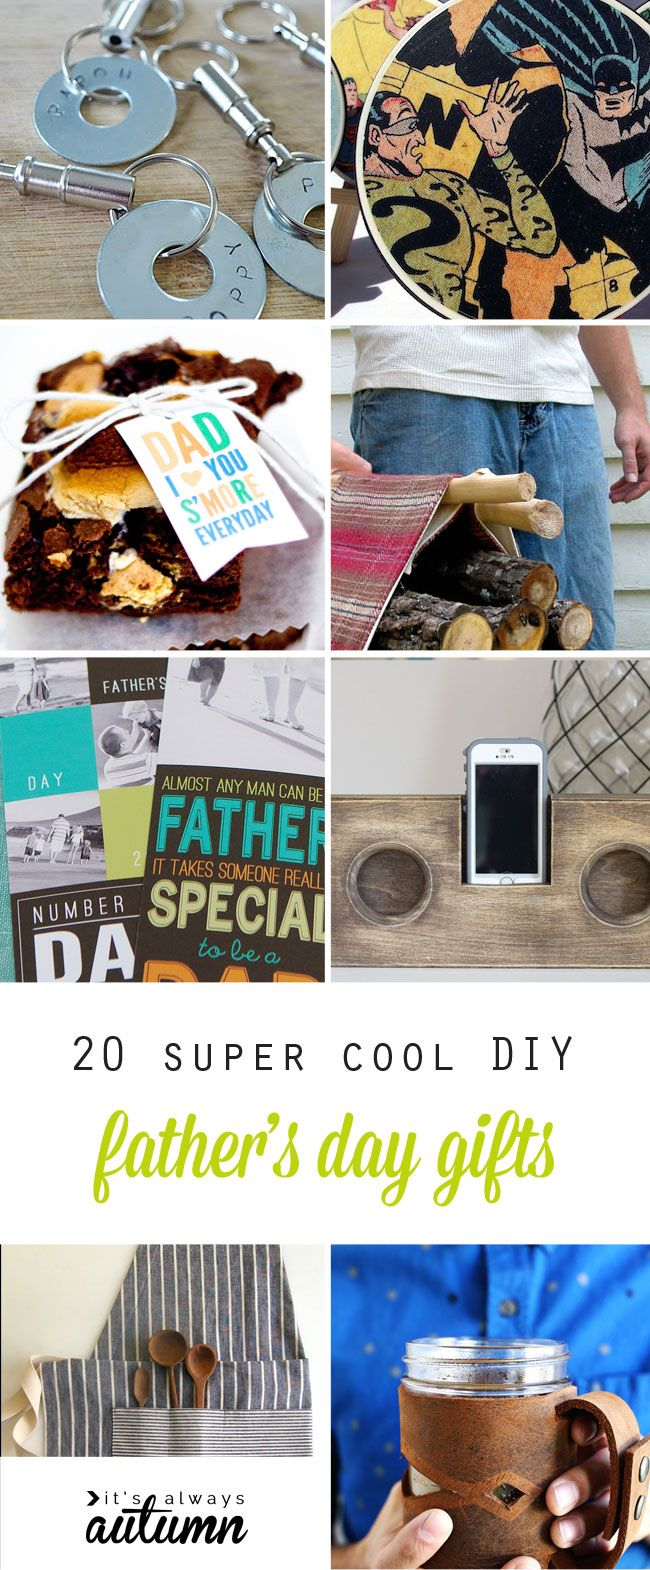 20 Super Cool Handmade Father S Day Gifts Diy For Dad Ogt